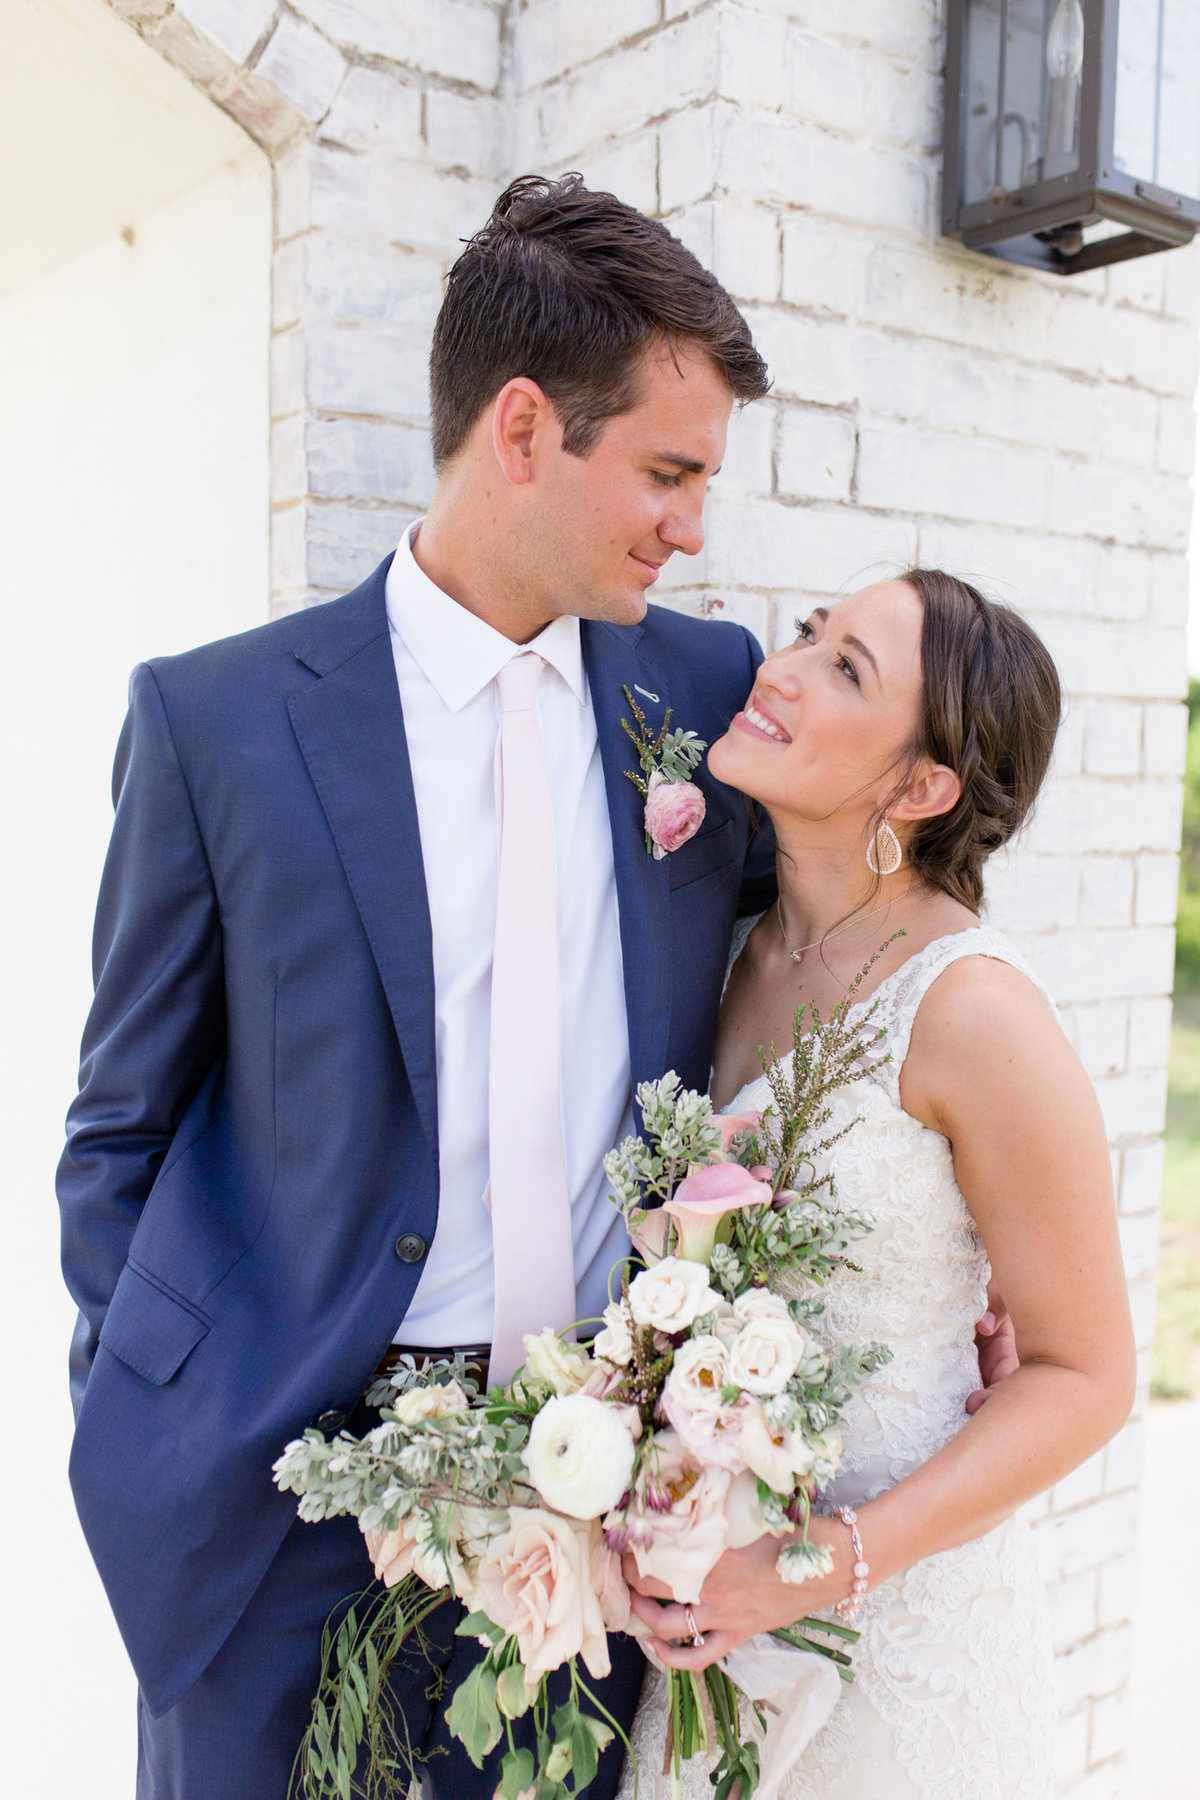 Grand Ivory Wedding| Dallas, Texas | DFW Wedding Photographer | Sami Kathryn Photography-99